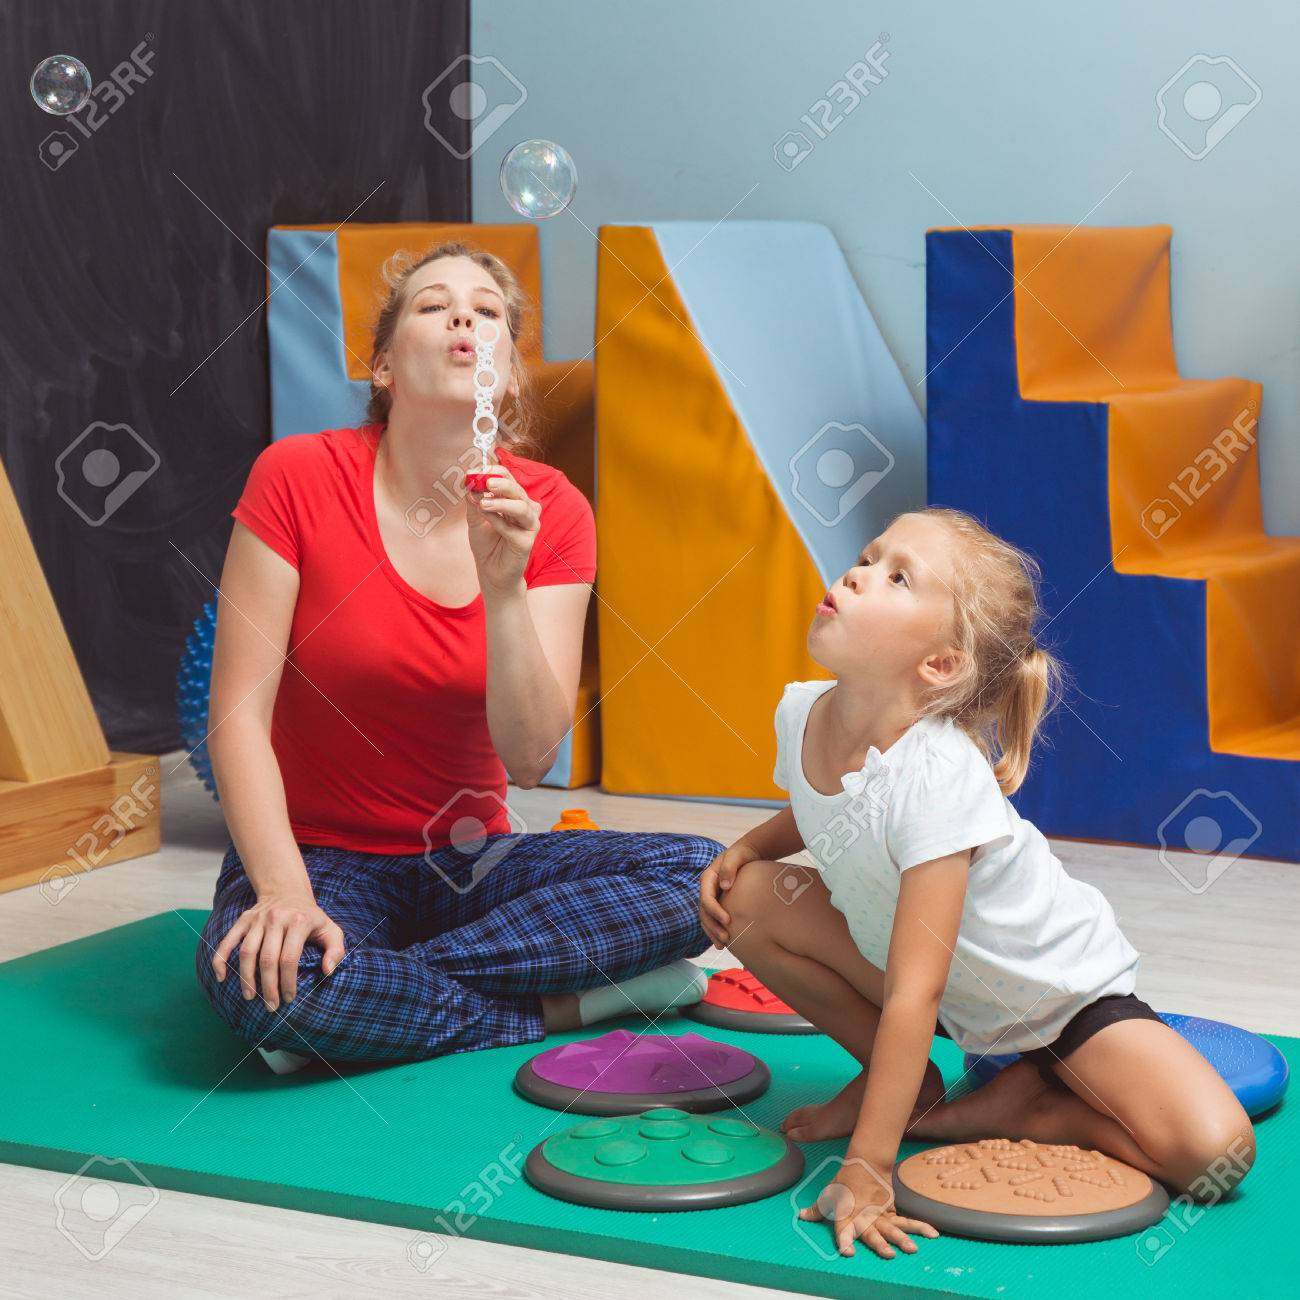 Child and therapist blowing bubbles during sensory integration therapy - 70964065